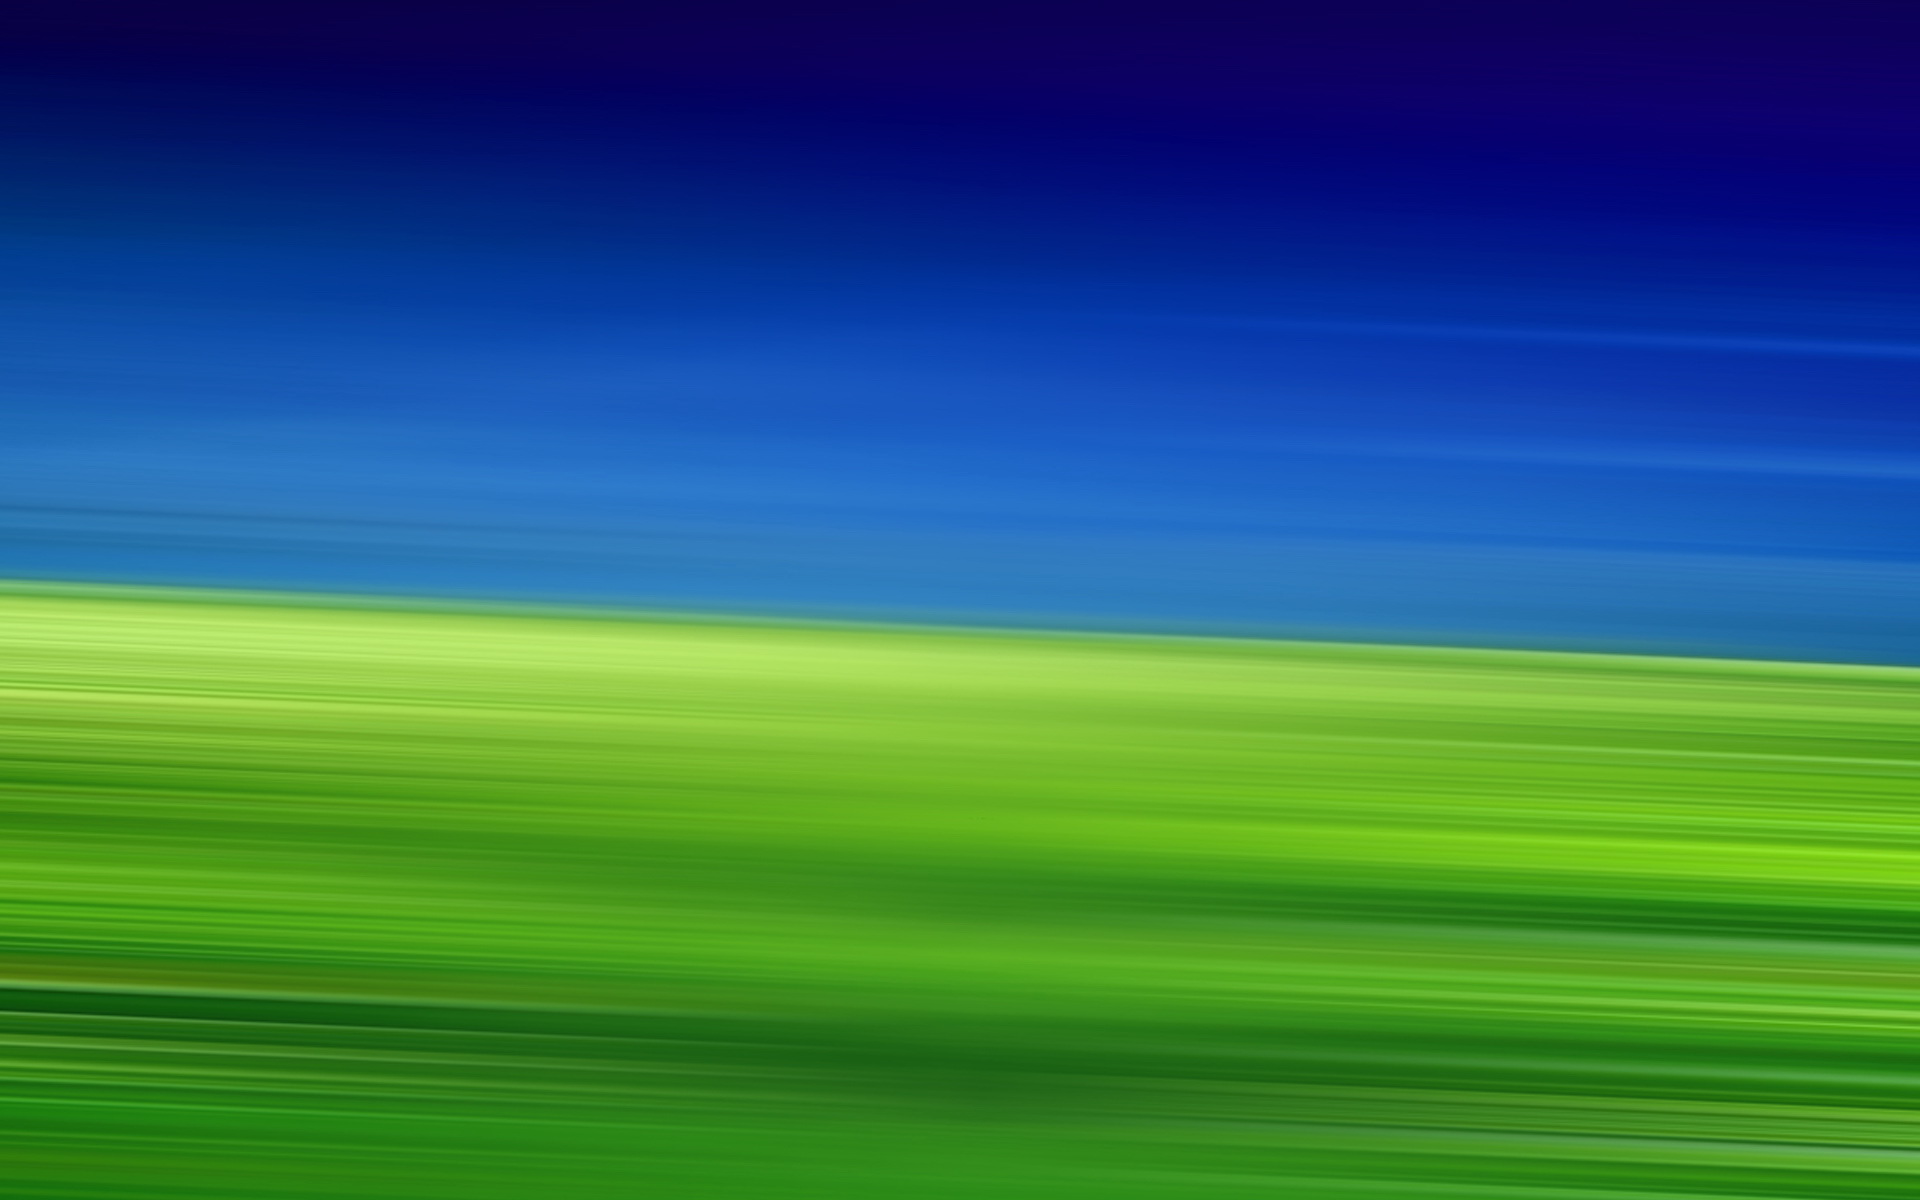 Blue And Green Wallpaper Hd Desktop